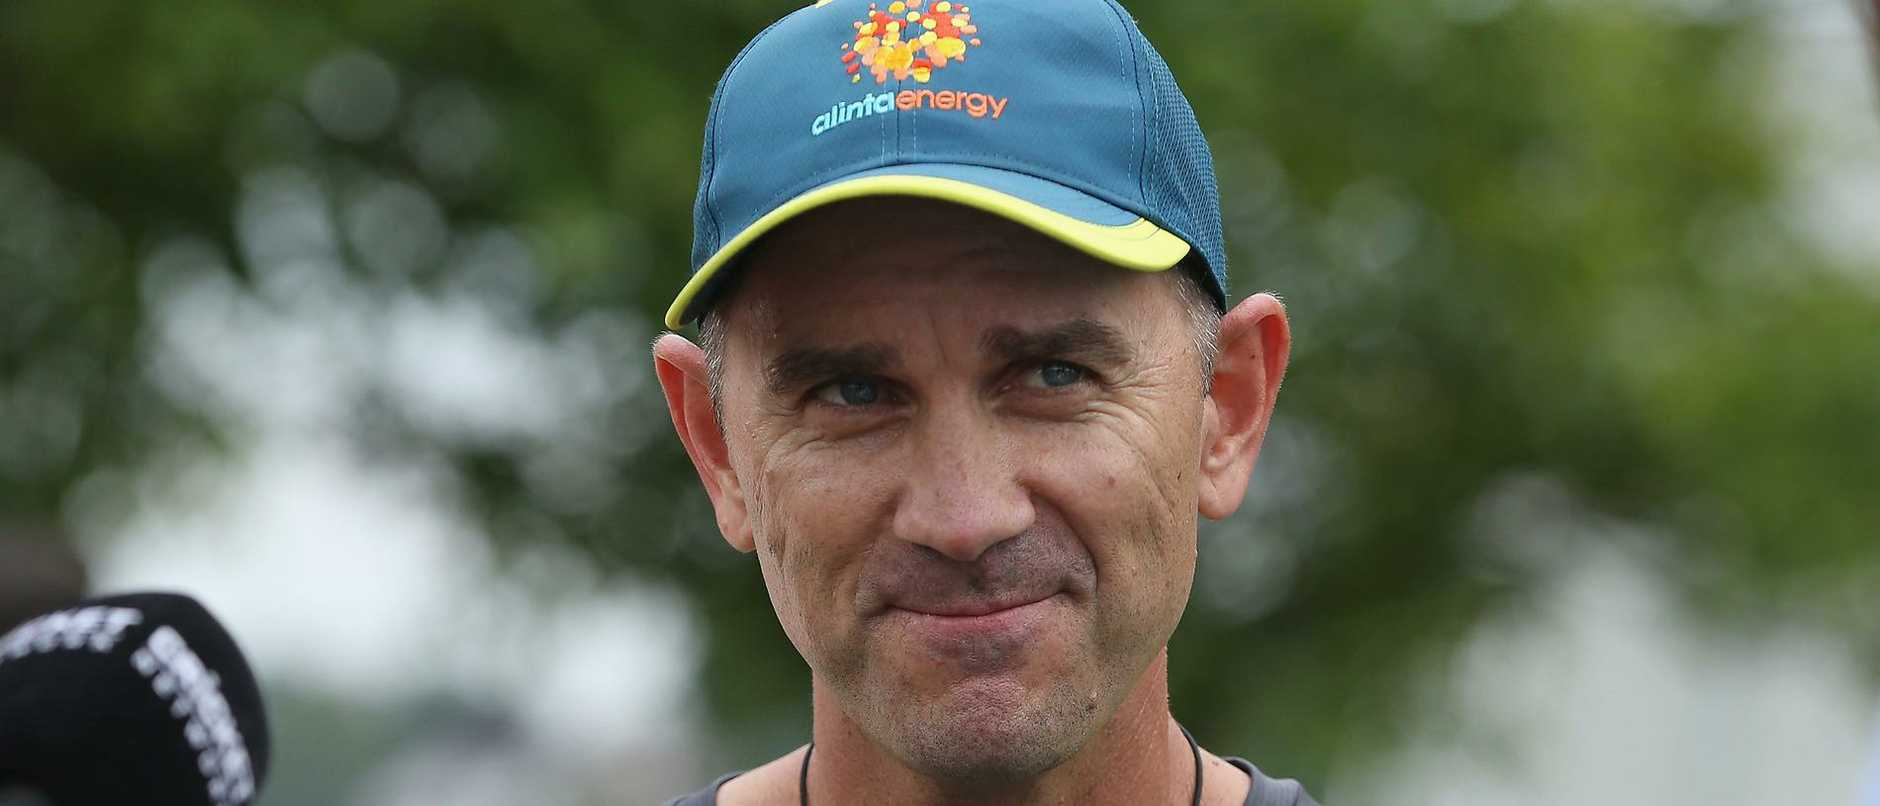 Justin Langer has dismissed criticism of his team.